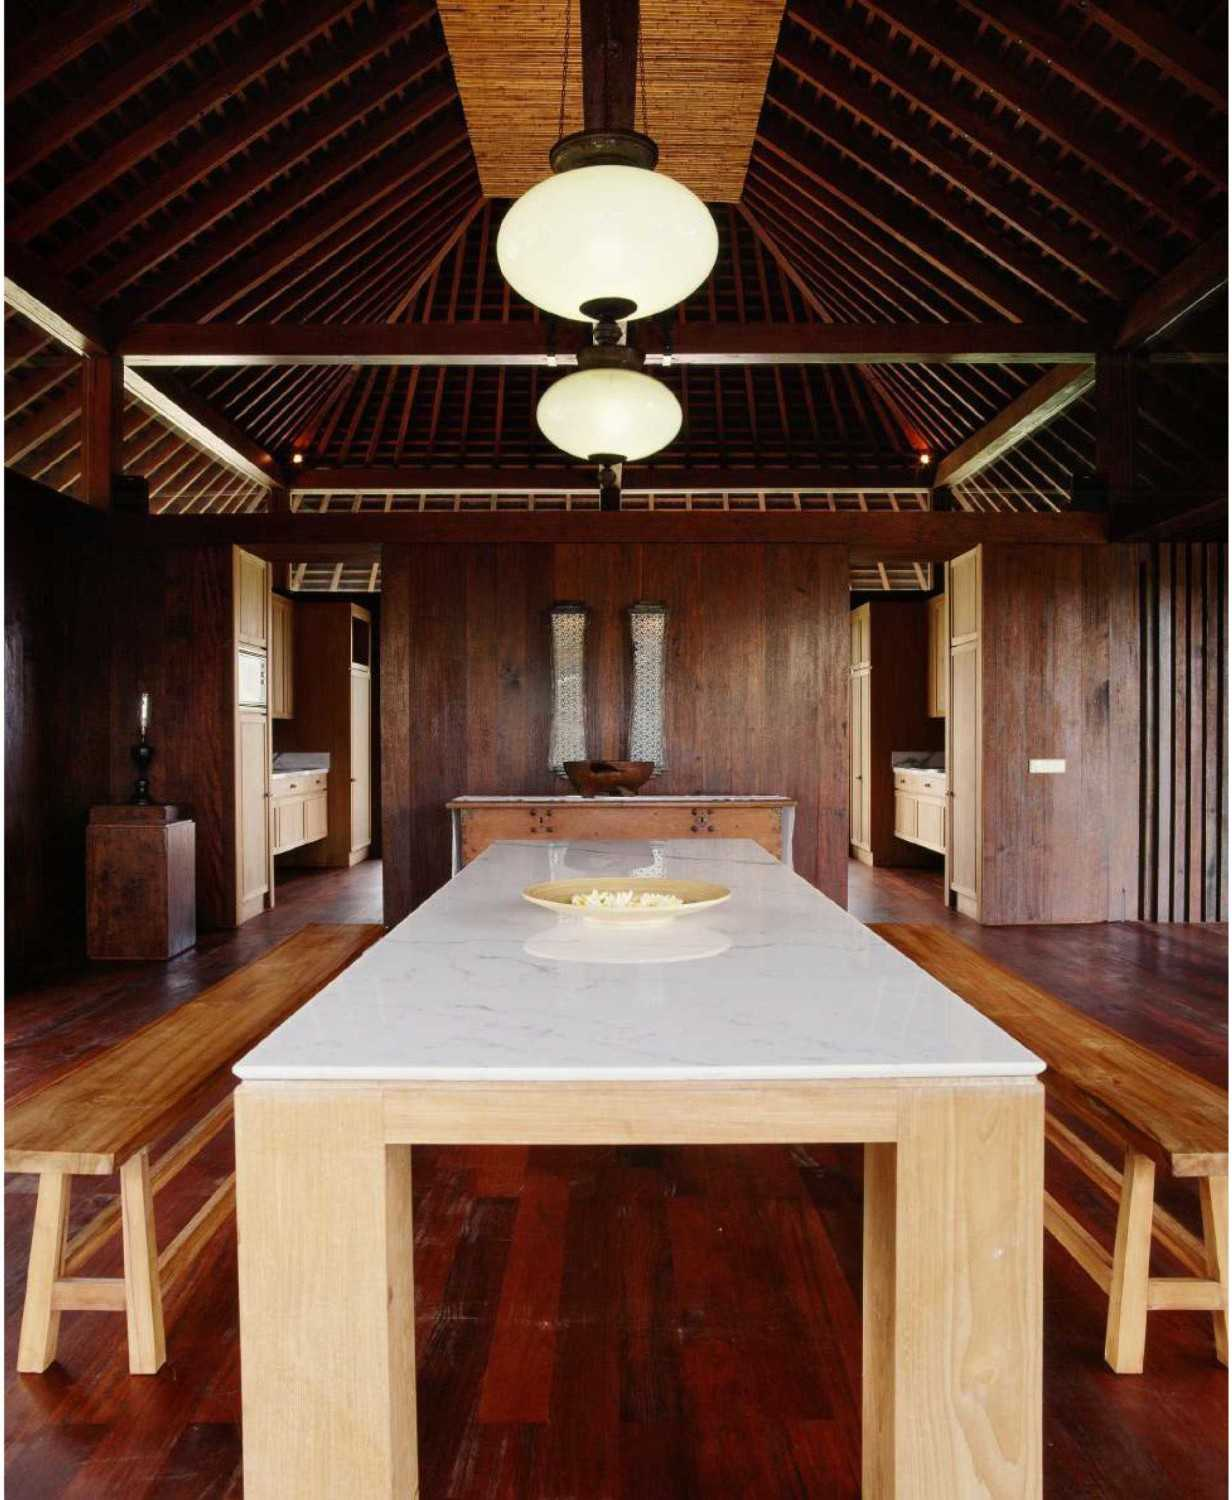 Studio Air Putih Ak_House Rancamaya, Bogor Rancamaya, Bogor Dining Table Tradisional 25020